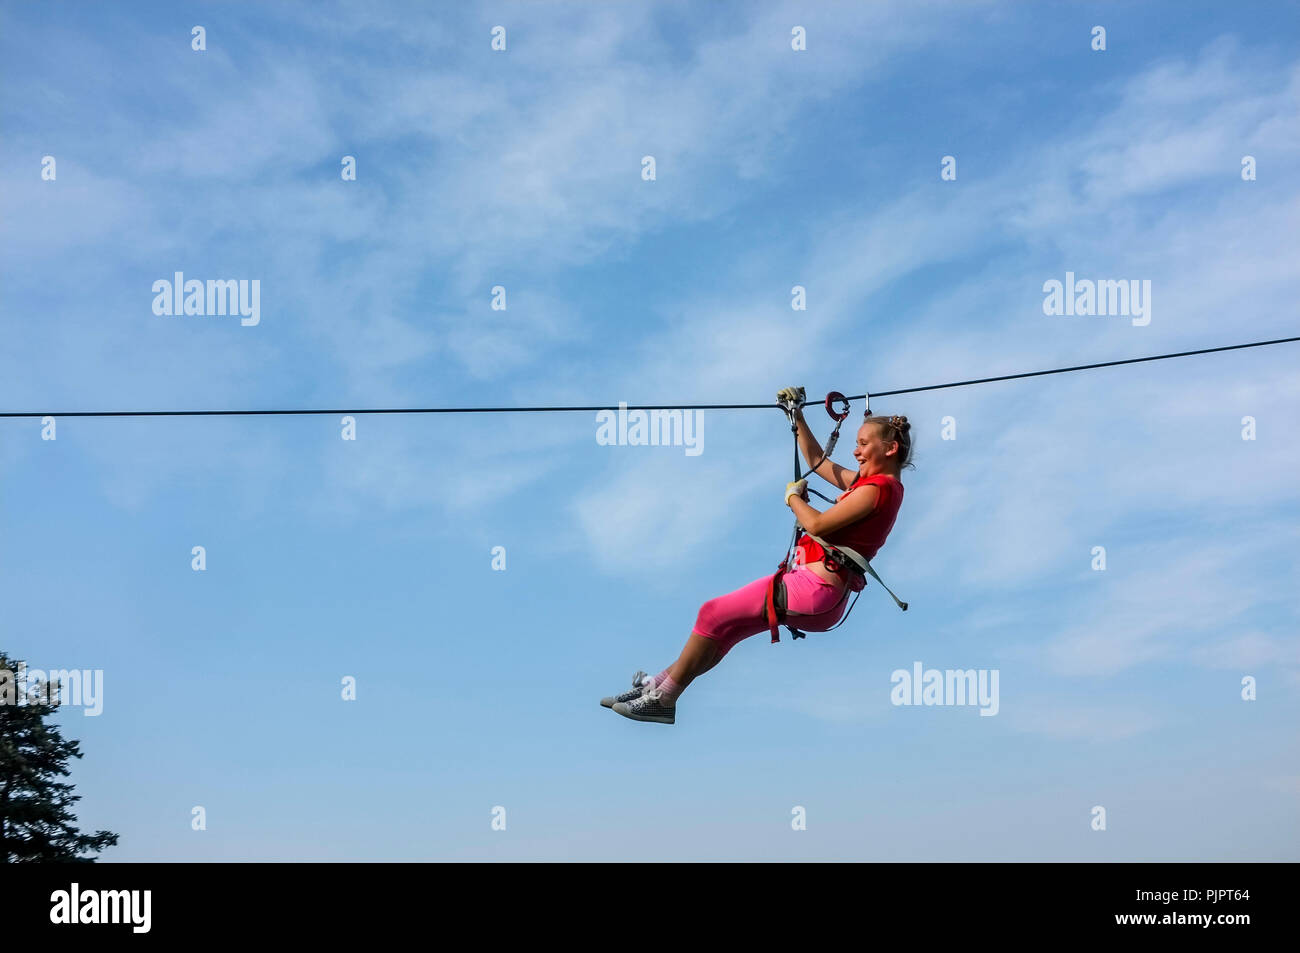 pre-teen-girl-on-a-zip-line-against-the-sky-PJPT64.jpg